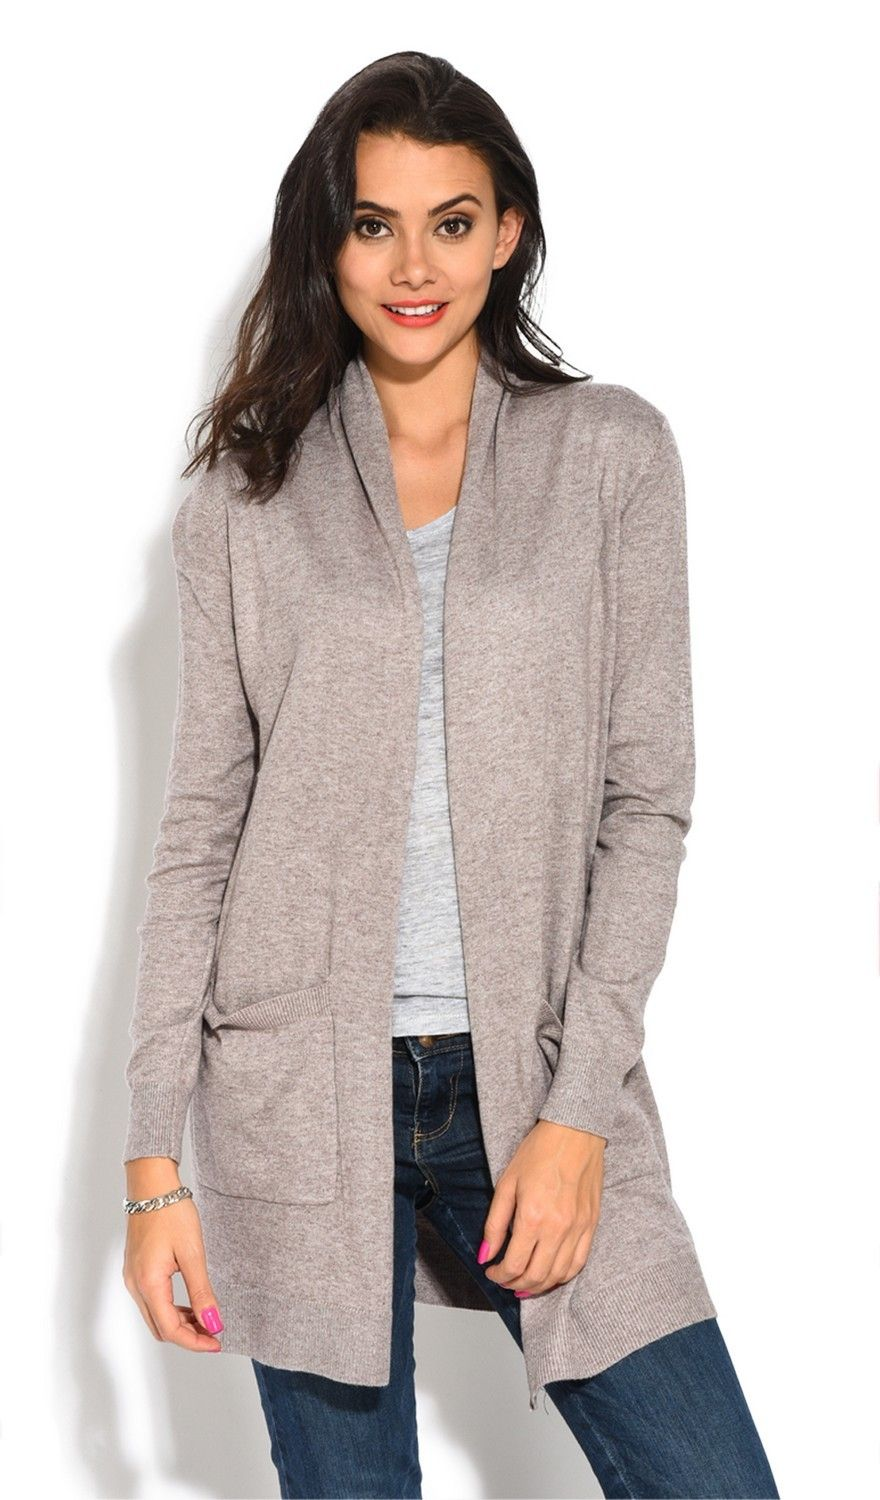 Assuili Longline Long Sleeve Cardigan with Pockets in Beige